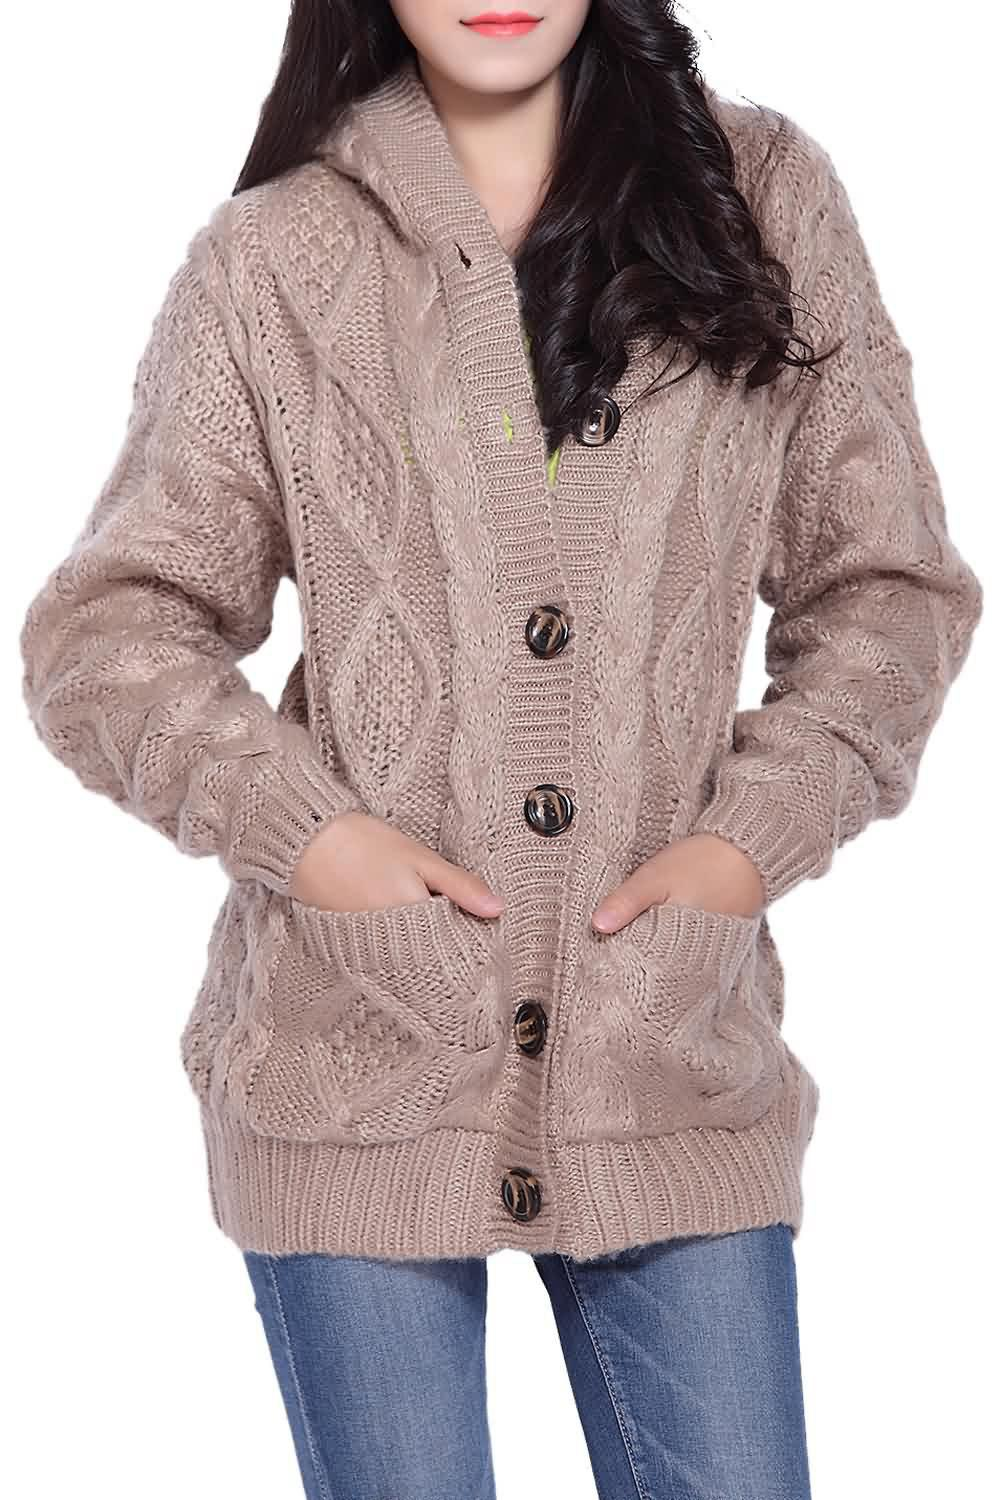 2018 Hooded Cable Knit Button Up Cardigan KHAKI ONE SIZE In ...